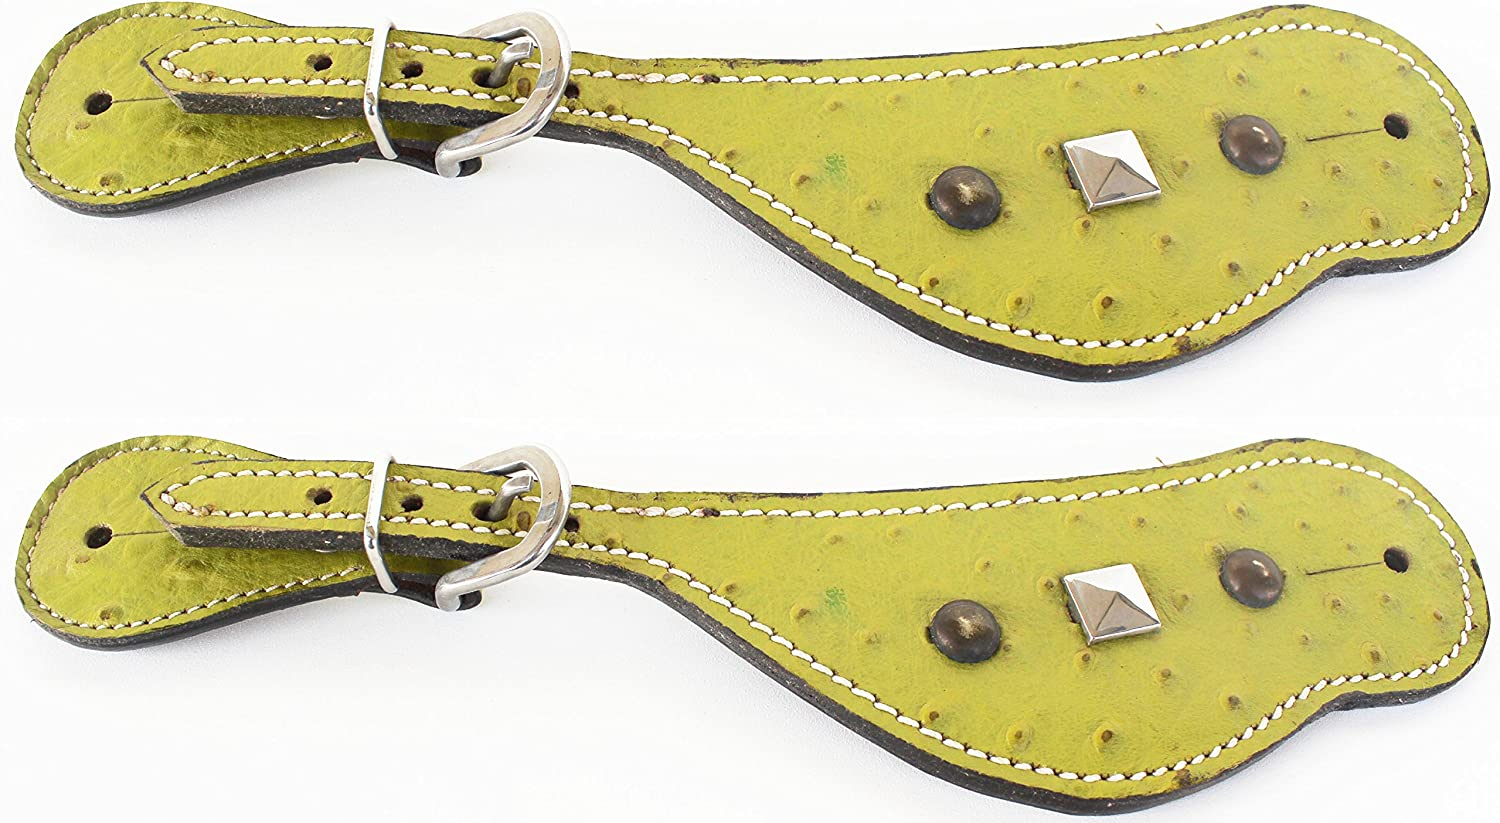 PRORIDER Horse Western Riding Cowboy Boots Leather Spur Straps Tack 7474